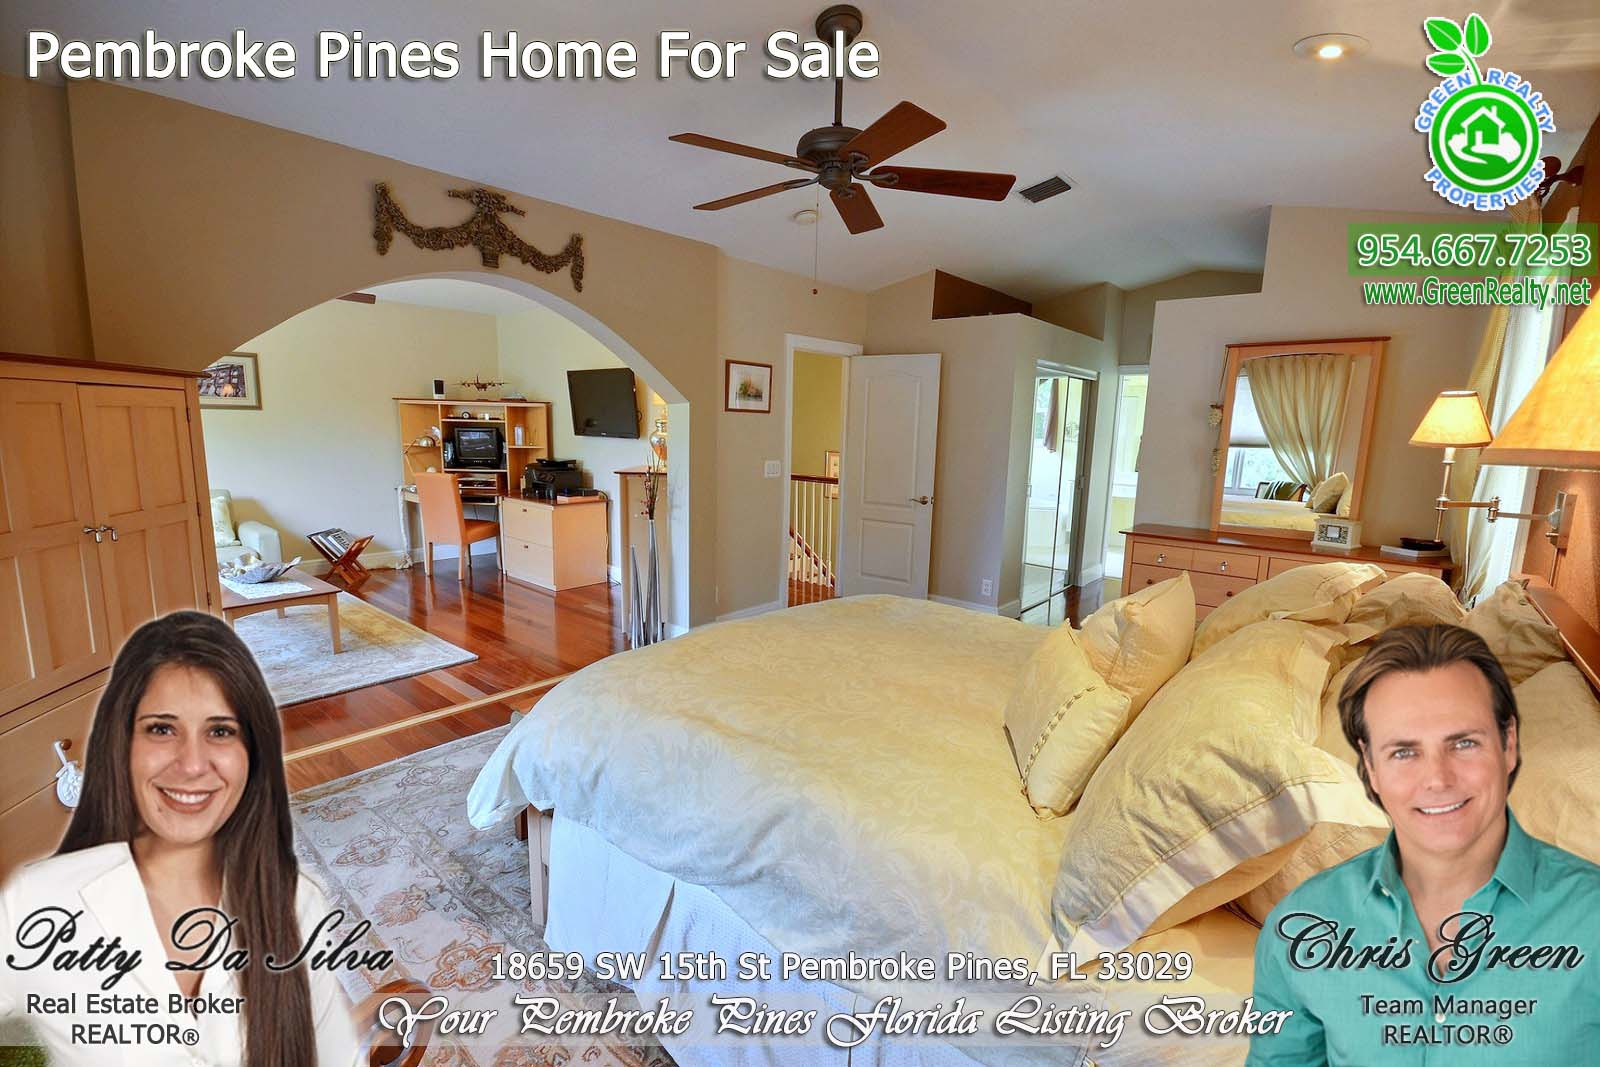 34 Pembroke Pines Real Estate Agents (1)